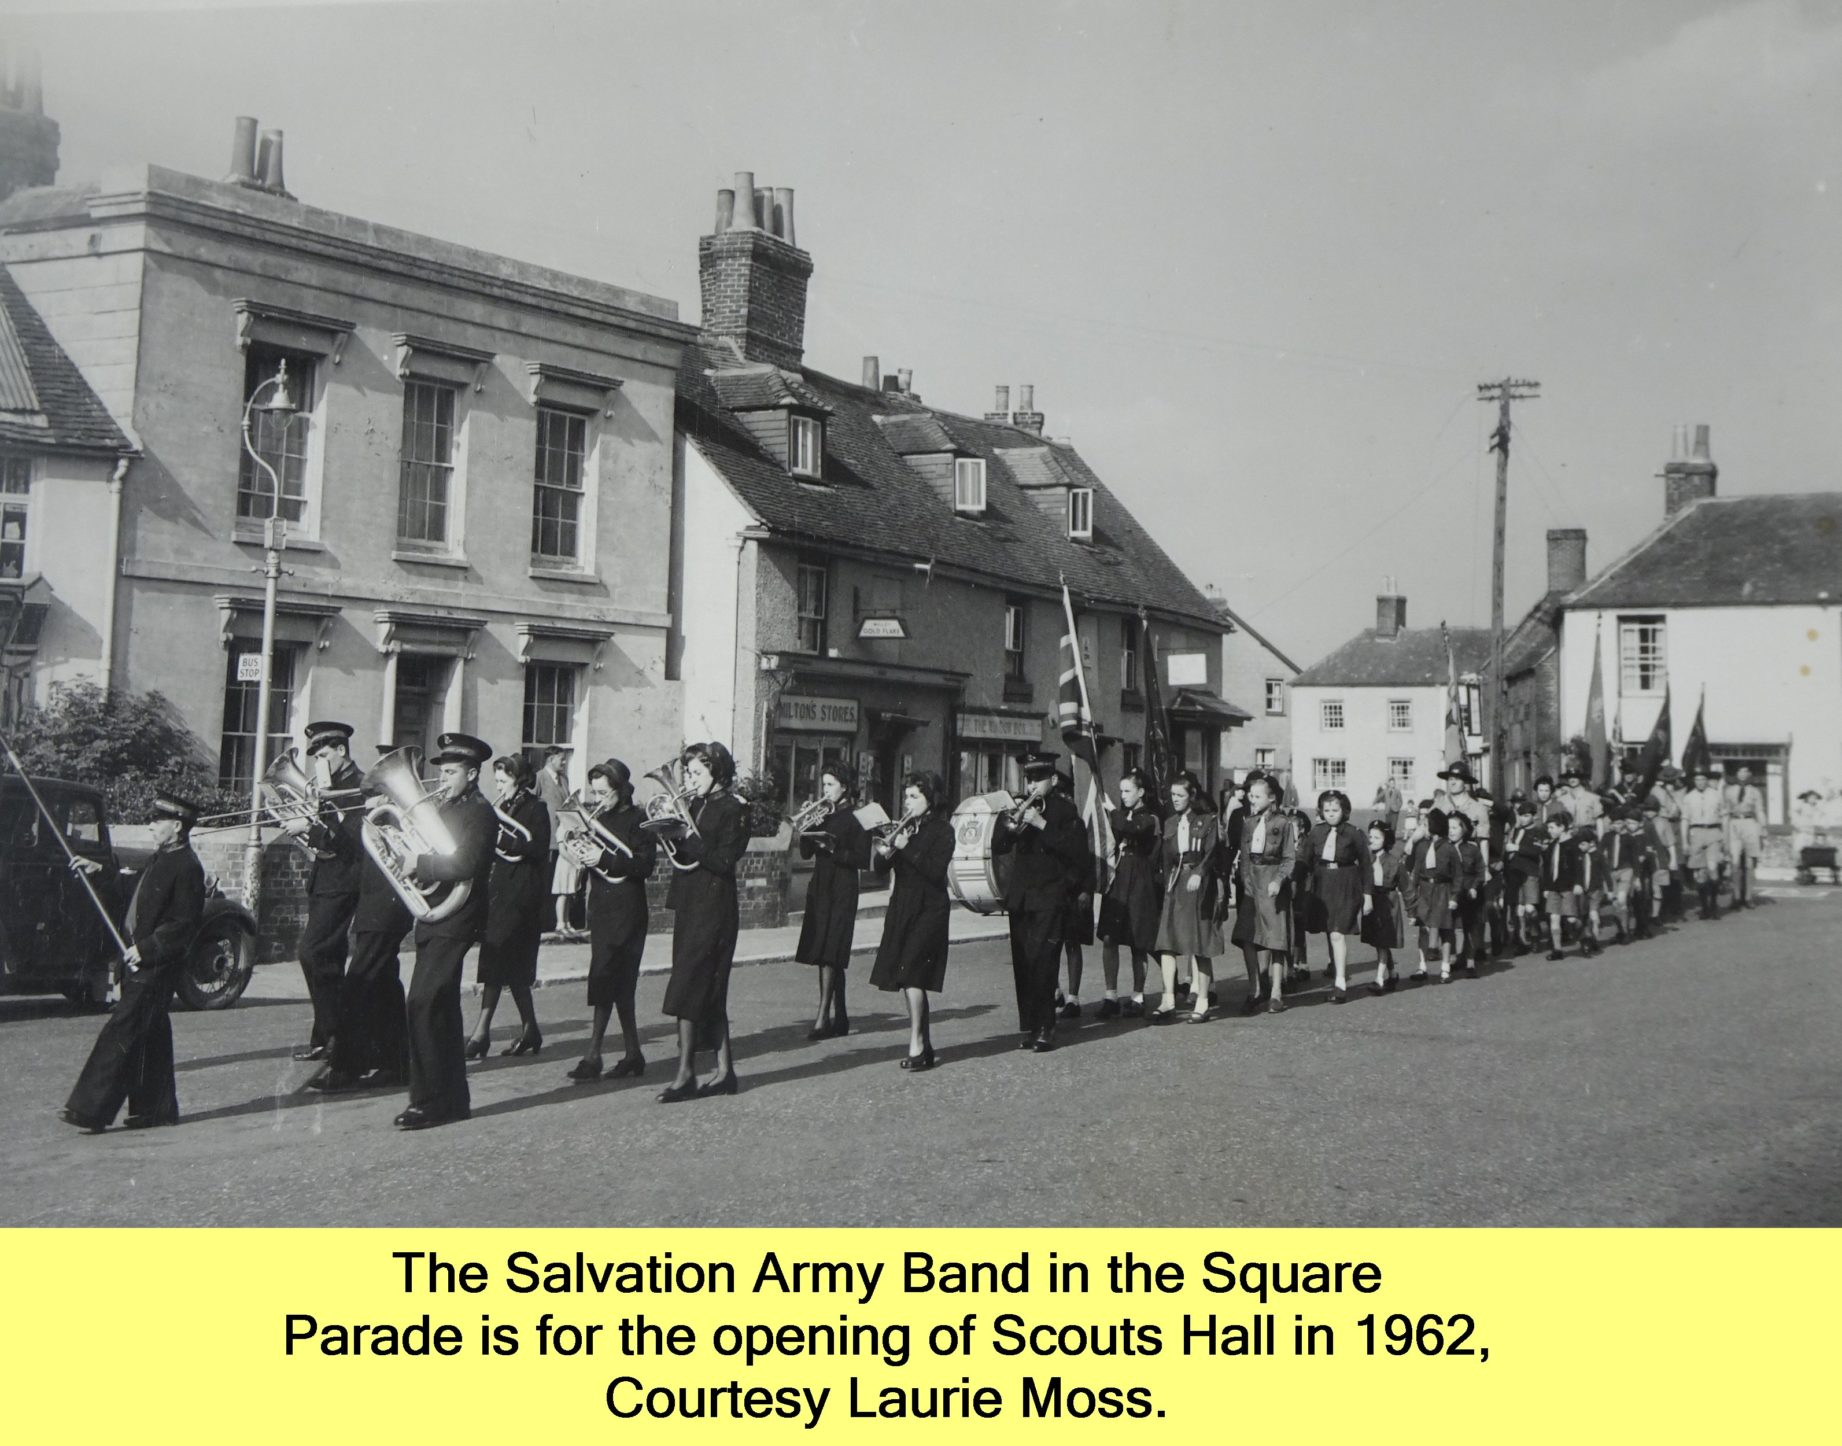 WESTBOURNE HISTORY PHOTO, SALVATION ARMY, BAND, SQUARE, SCOUTS, 1962